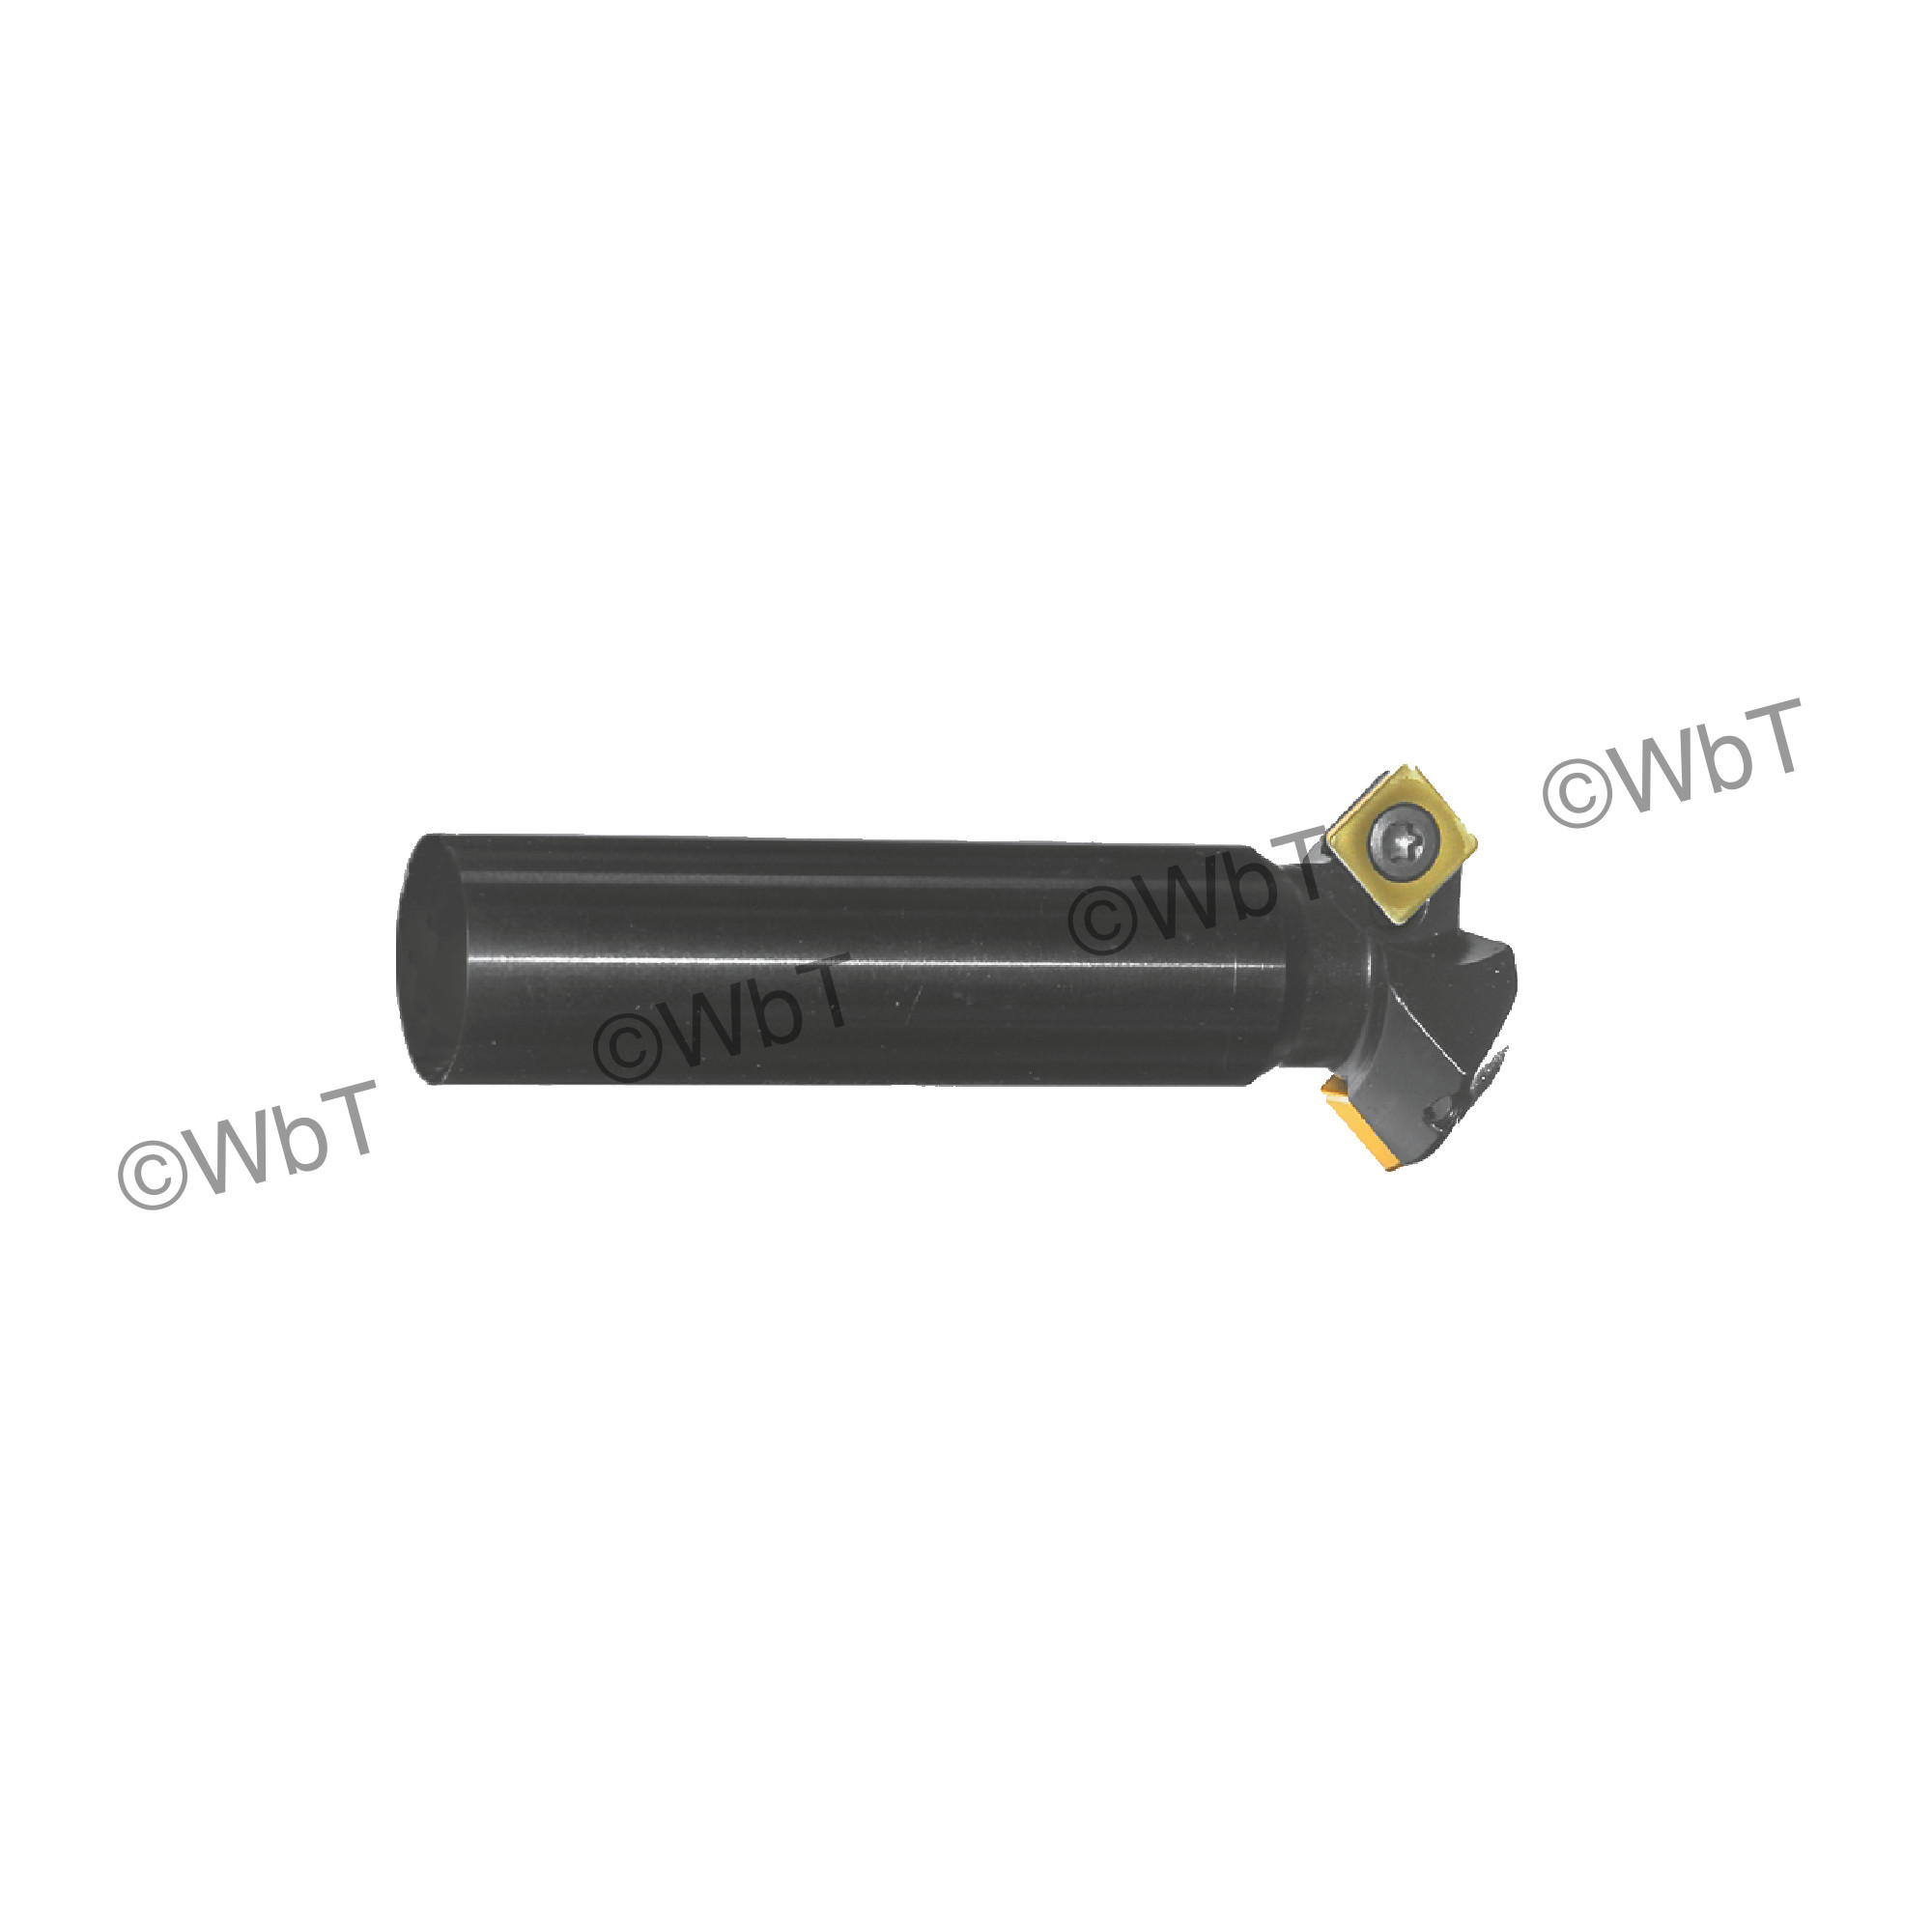 """T&O - C45-125-SD09-075 / 45° Chamfer Mill for SDHW322 / Chamfer Range: 0.772"""" - 1.250"""" / Right Hand"""